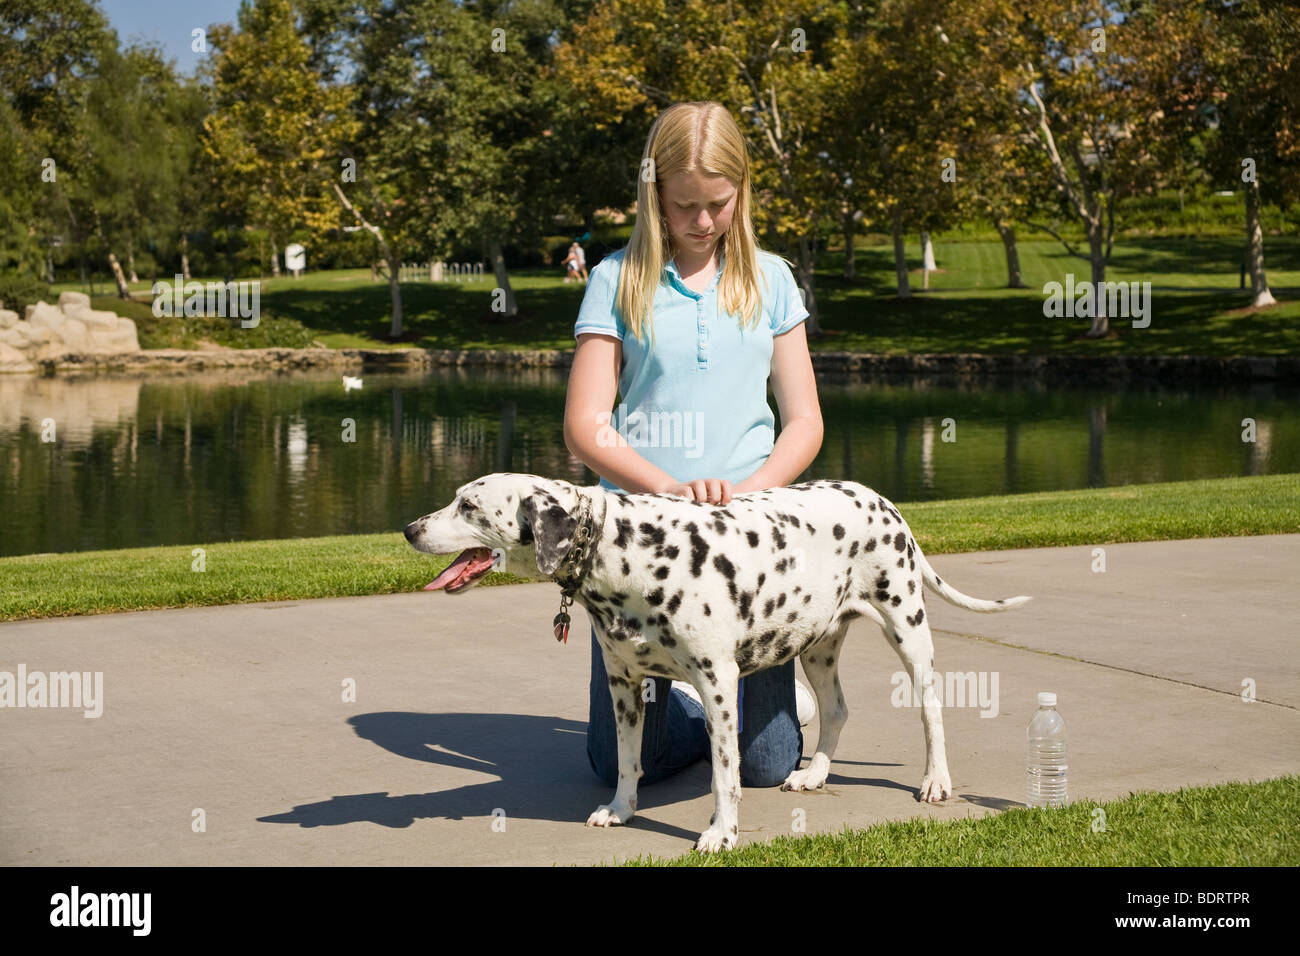 Caucasian 11-13 year old years age girl child playing play plays dog owner showing affection dalmatian dogs front - Stock Image